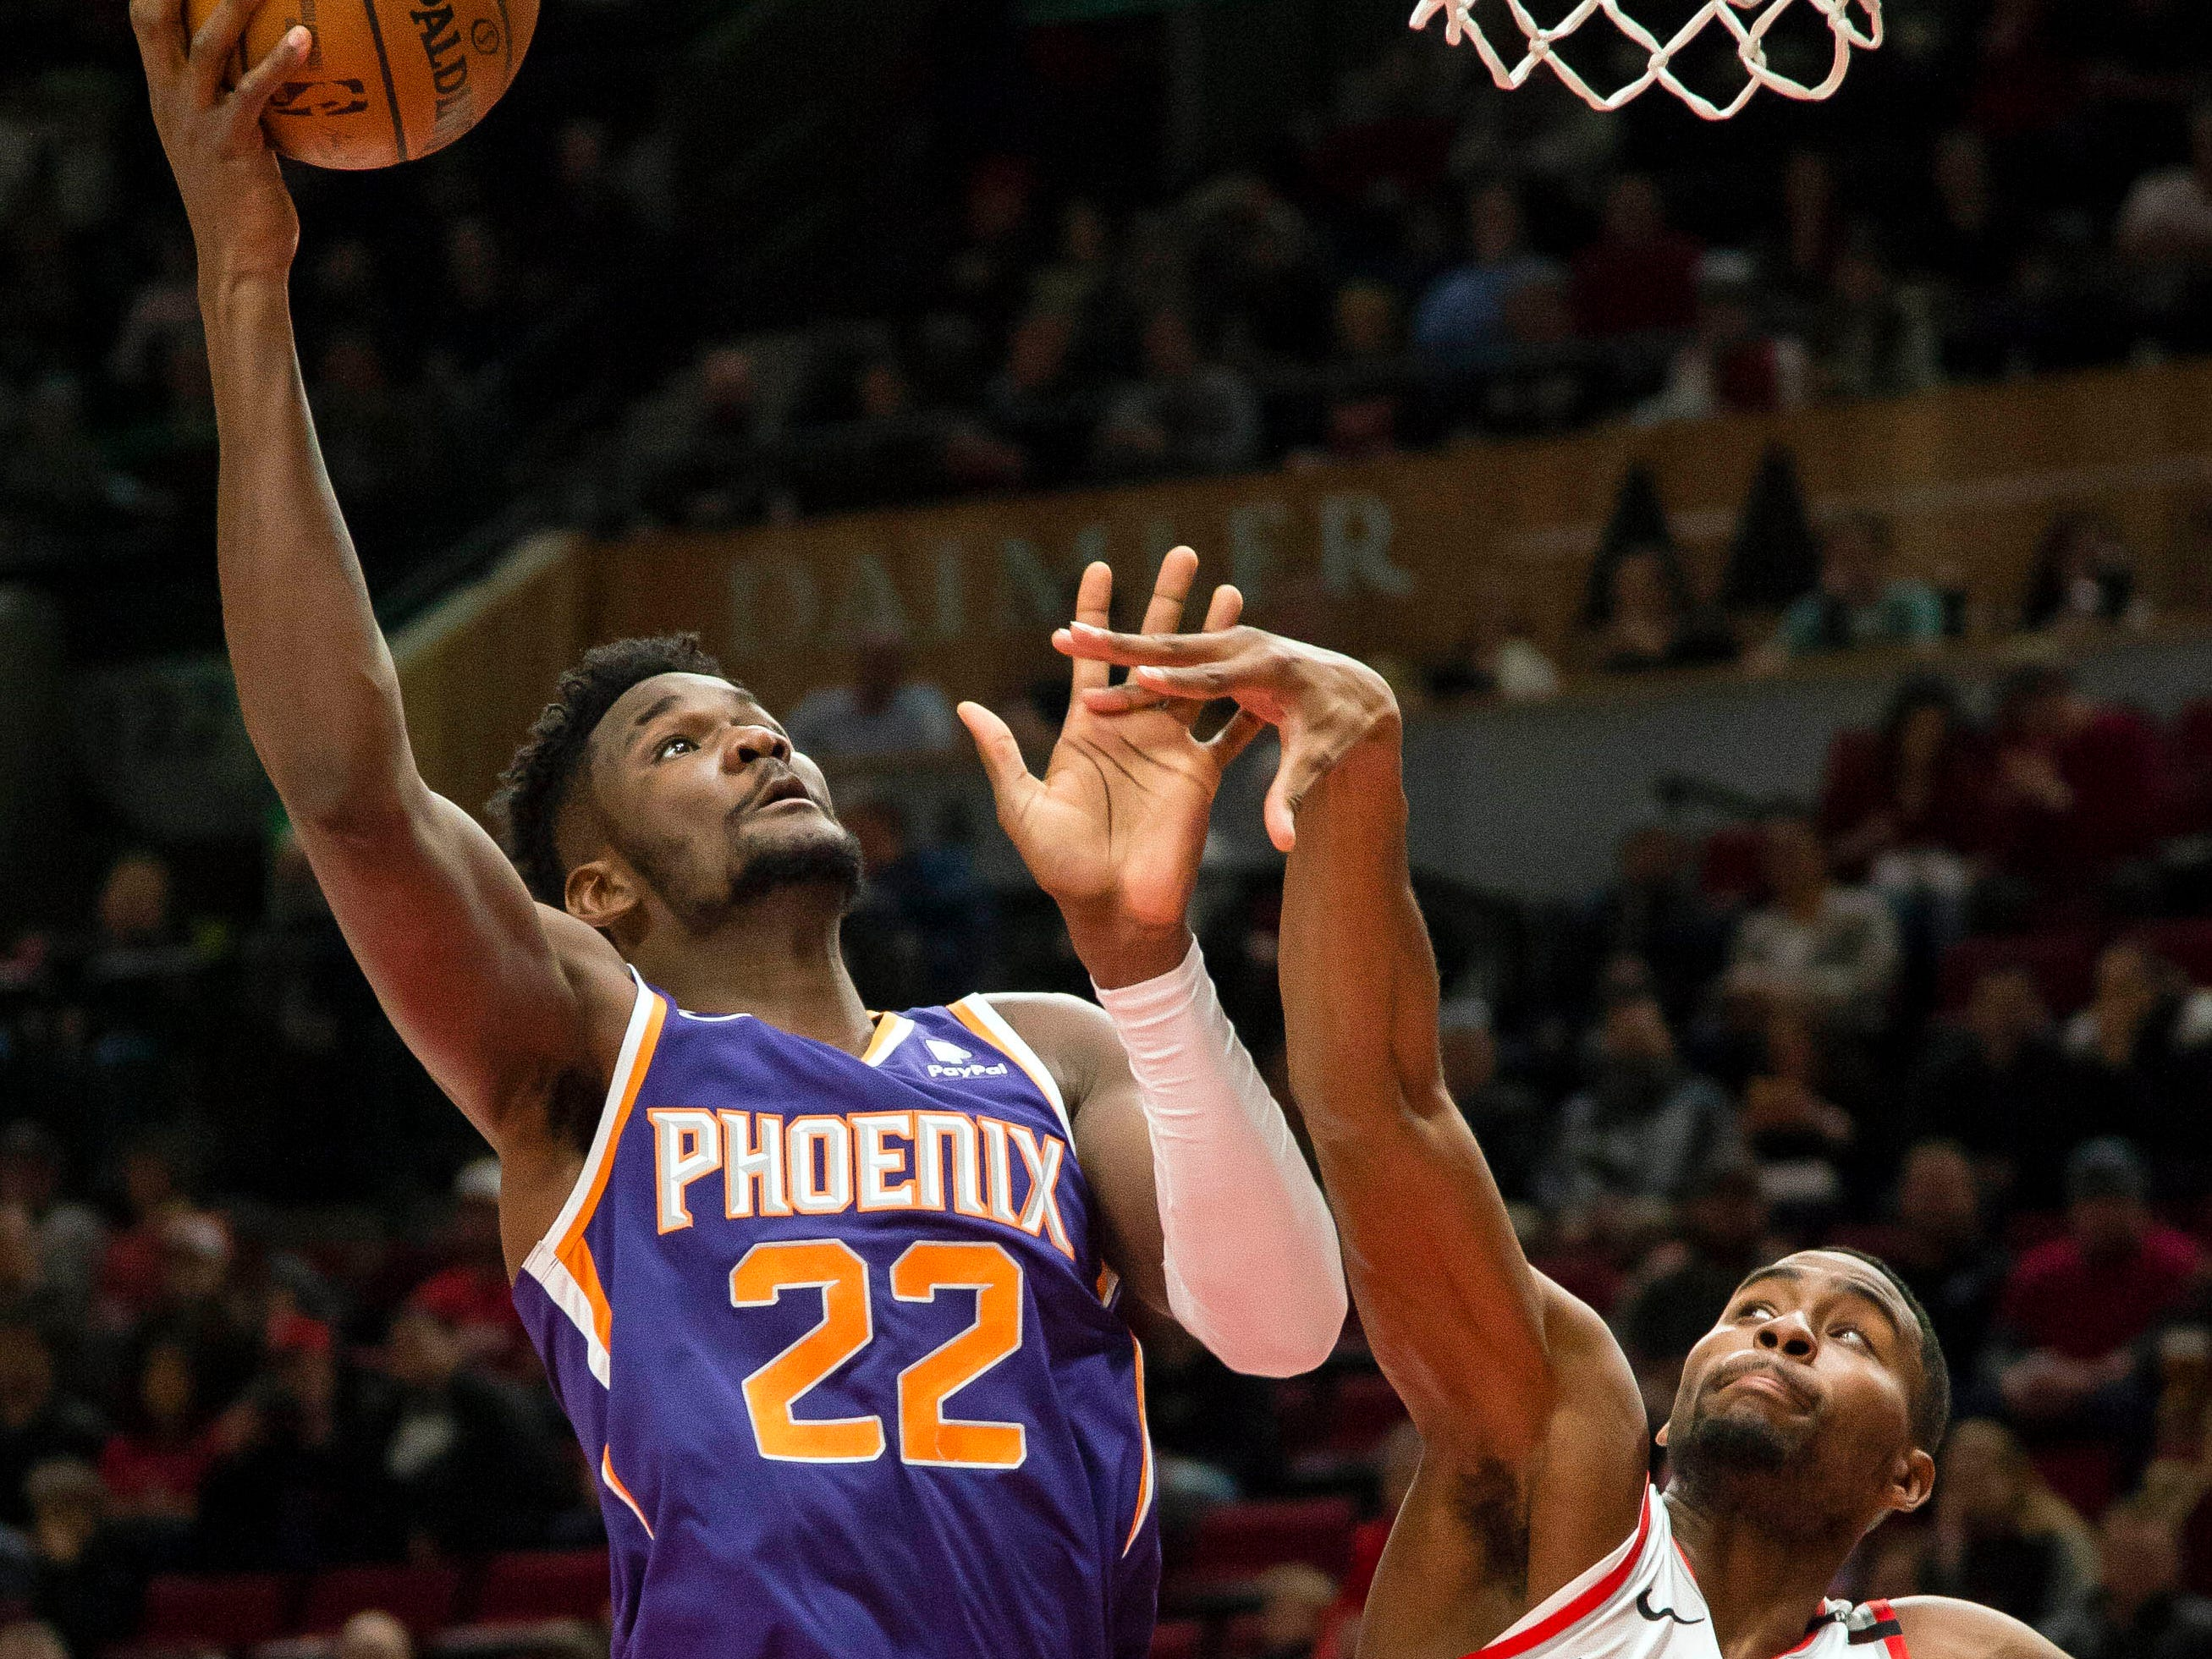 Dec 6, 2018; Portland, OR, USA; Phoenix Suns center Deandre Ayton (22) shoots over Portland Trail Blazers forward Maurice Harkless (4) during the first half at Moda Center. Mandatory Credit: Troy Wayrynen-USA TODAY Sports